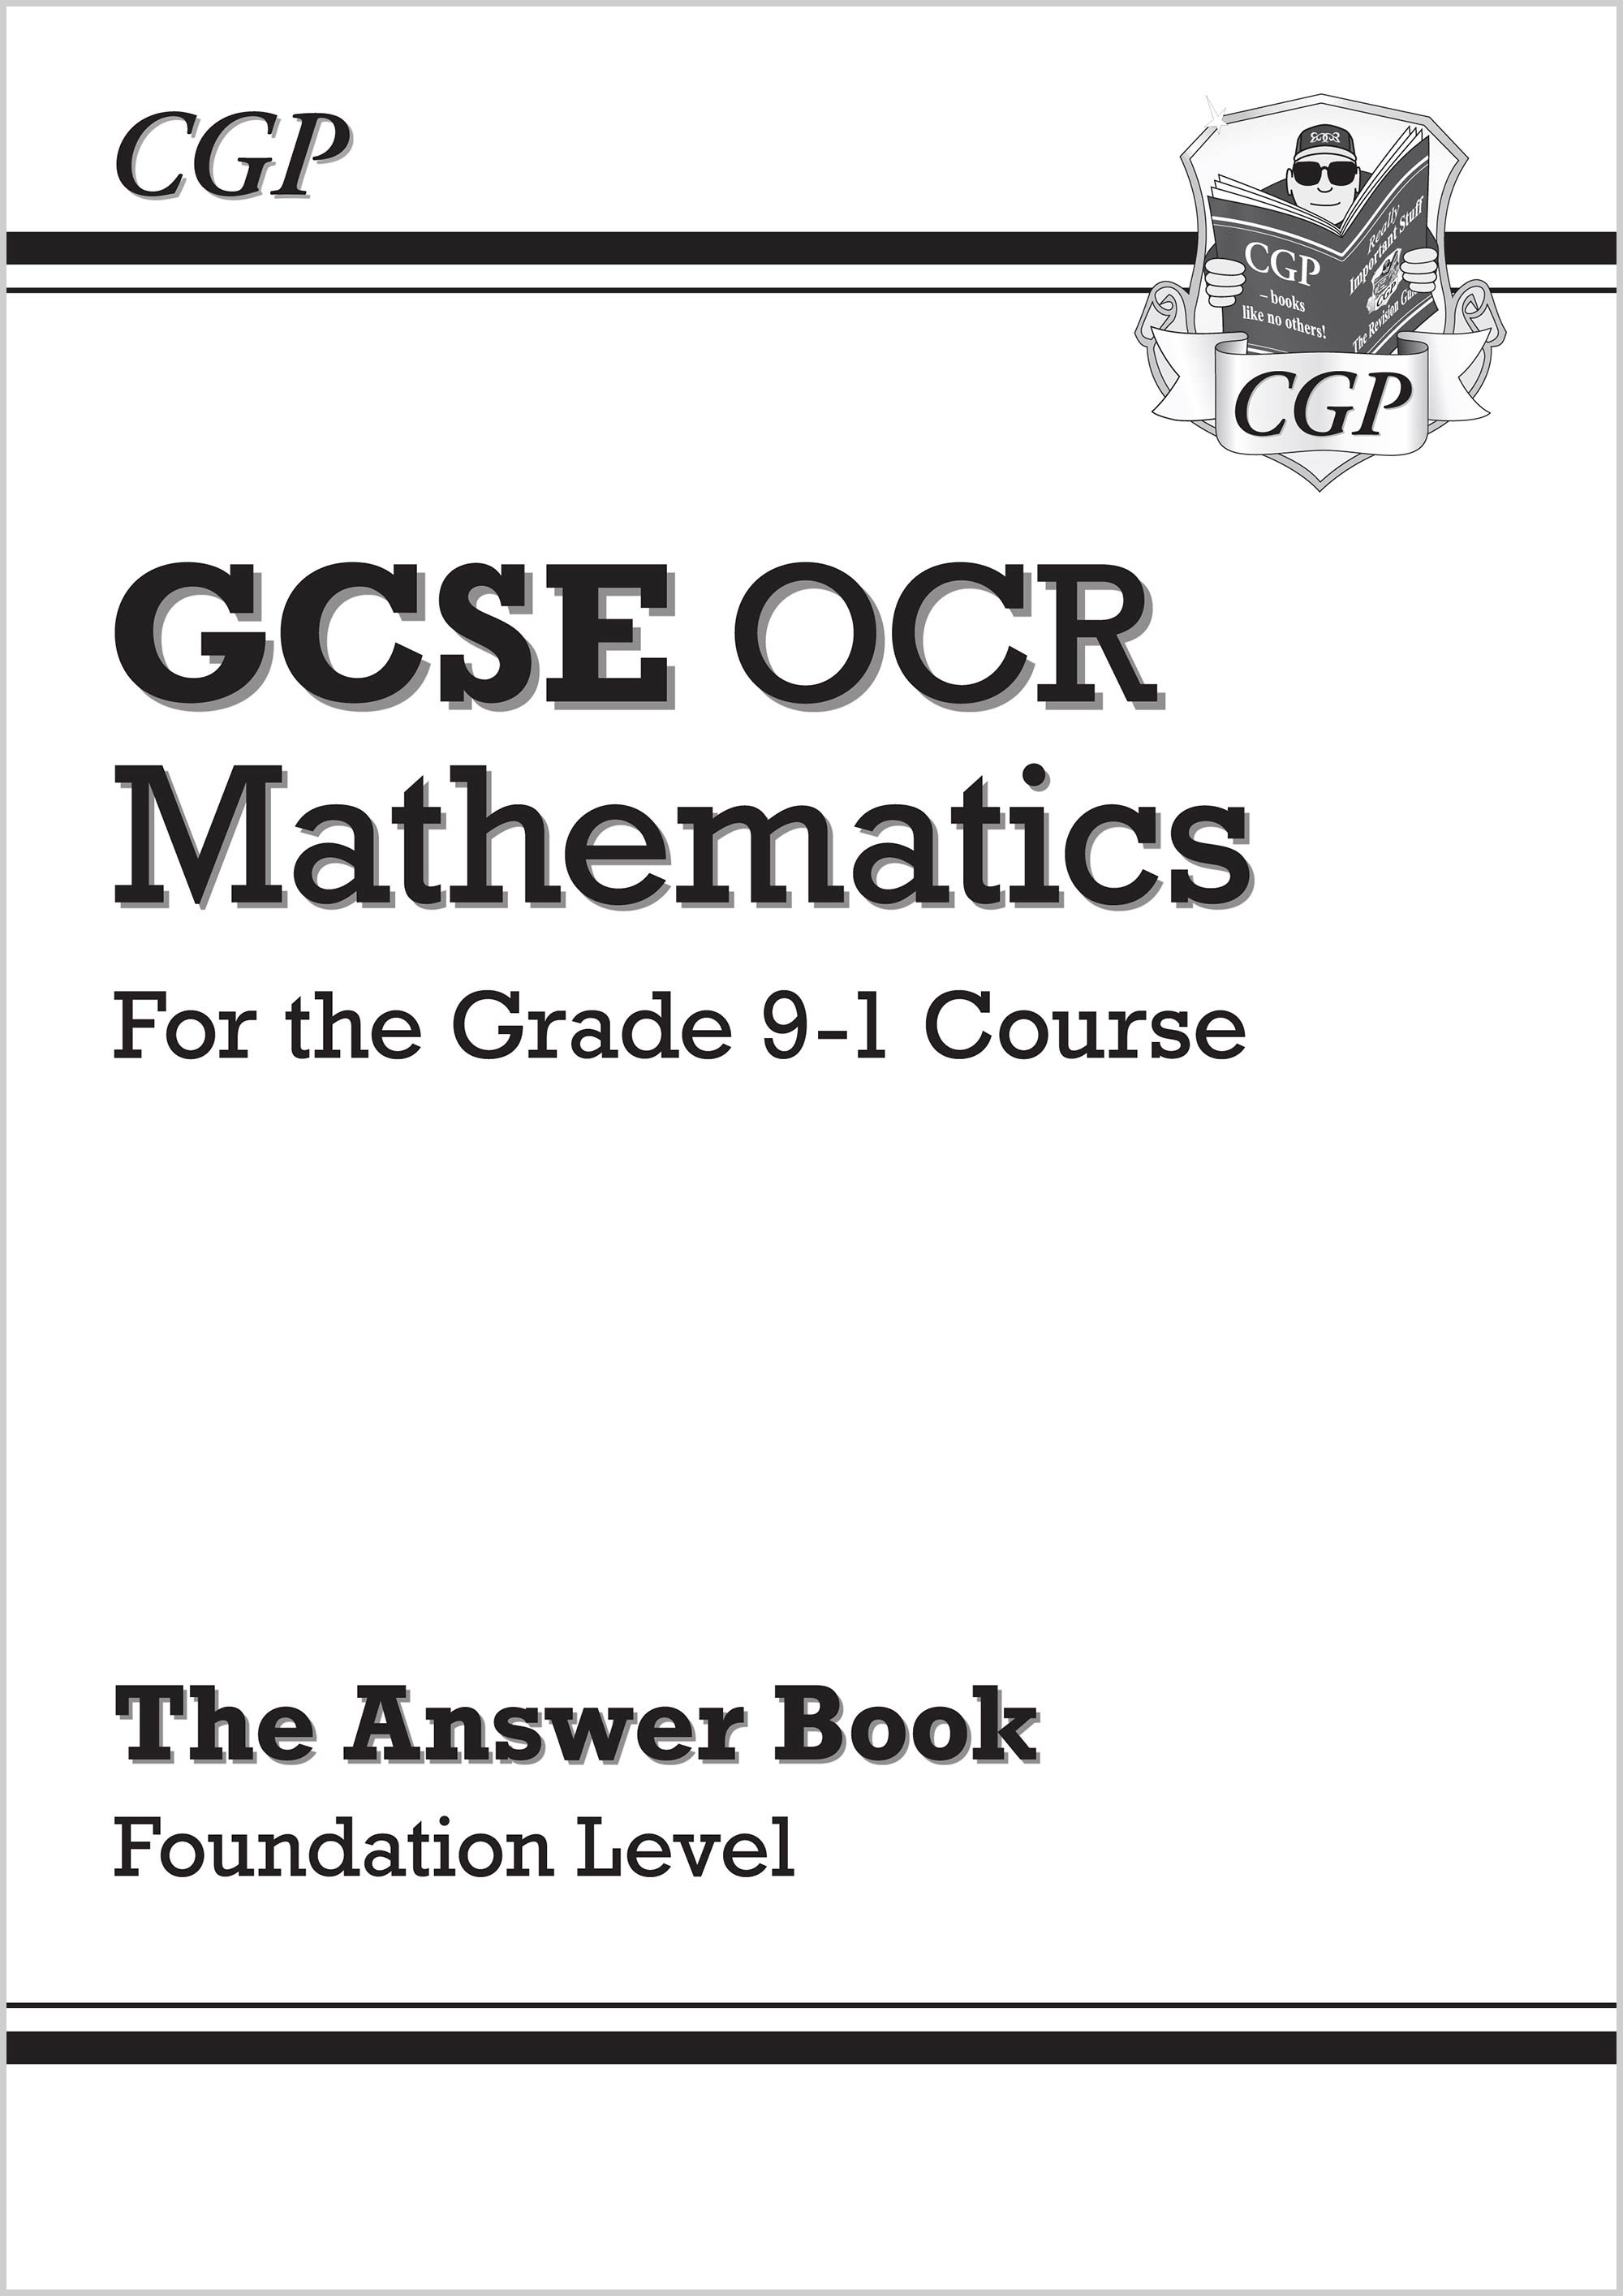 MCFA46 - GCSE Maths OCR Answers for Workbook: Foundation - for the Grade 9-1 Course